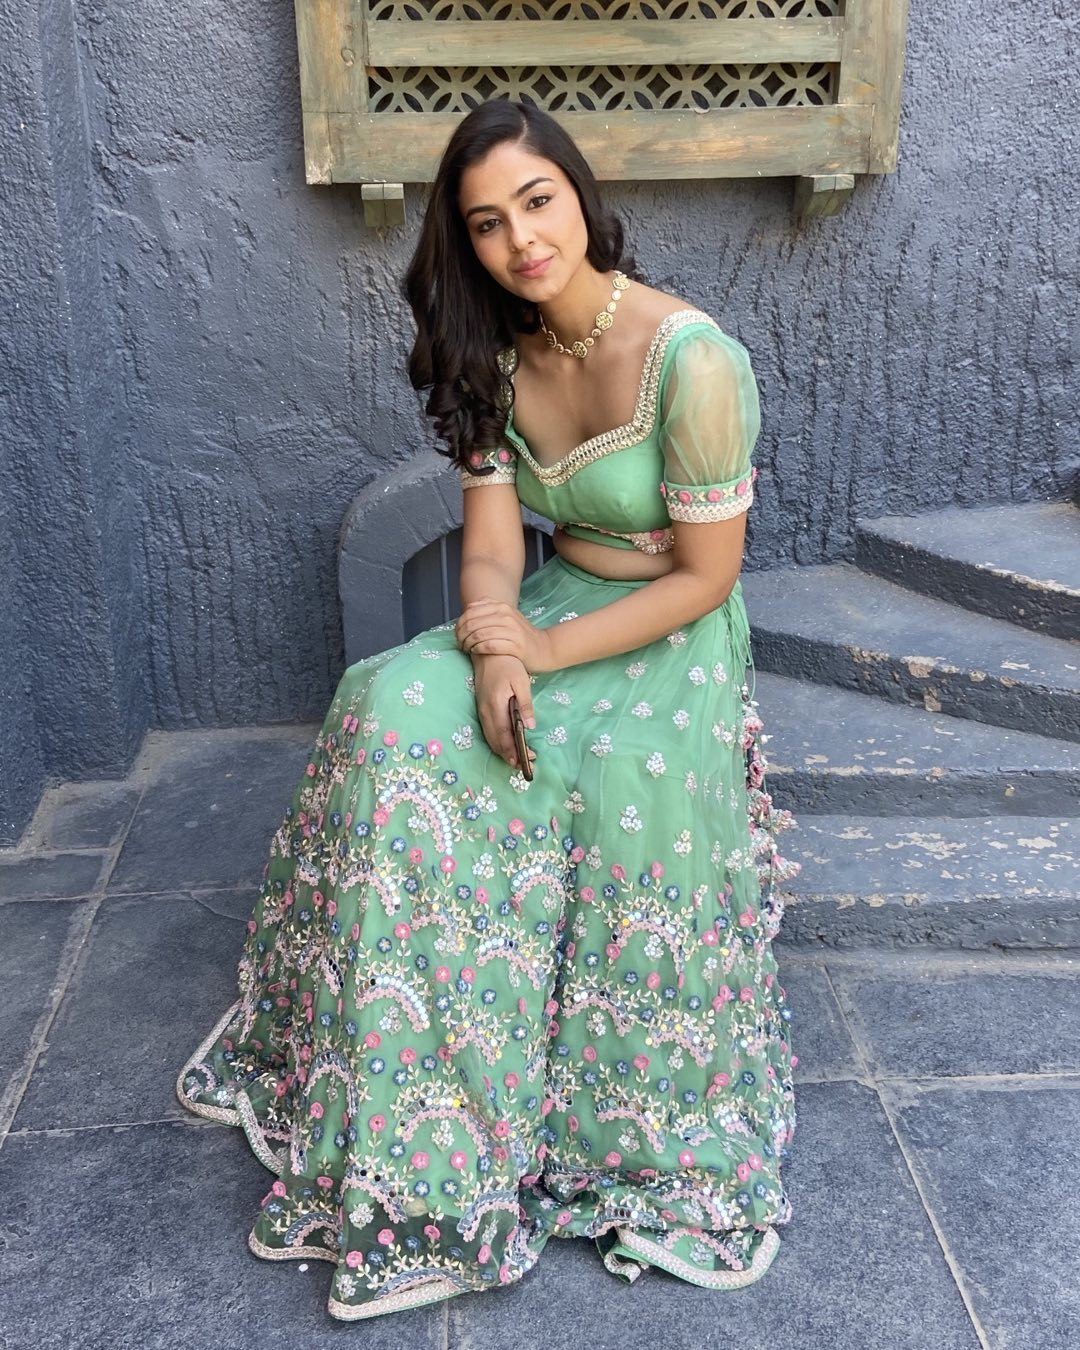 Stunning English olive green color bridal net lehnega and blouse with classy hand embroidery  work. 2021-08-01